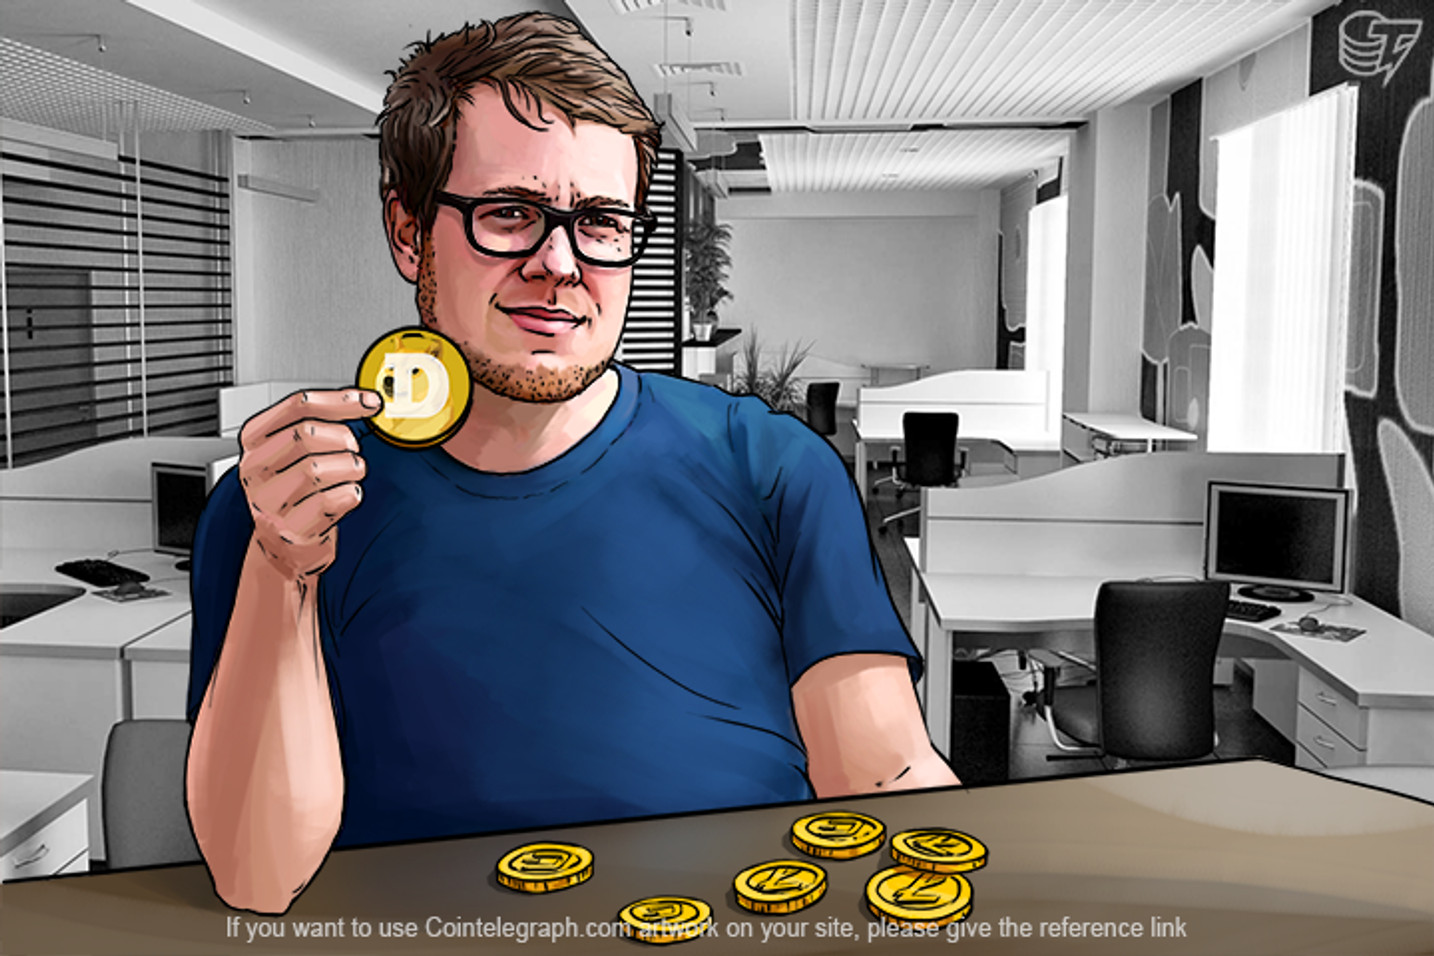 Daily Altcoin Price Analysis: Awkward situation for Litecoin, DASH and Peercoin stabilize, Dogecoin and ETH fall down